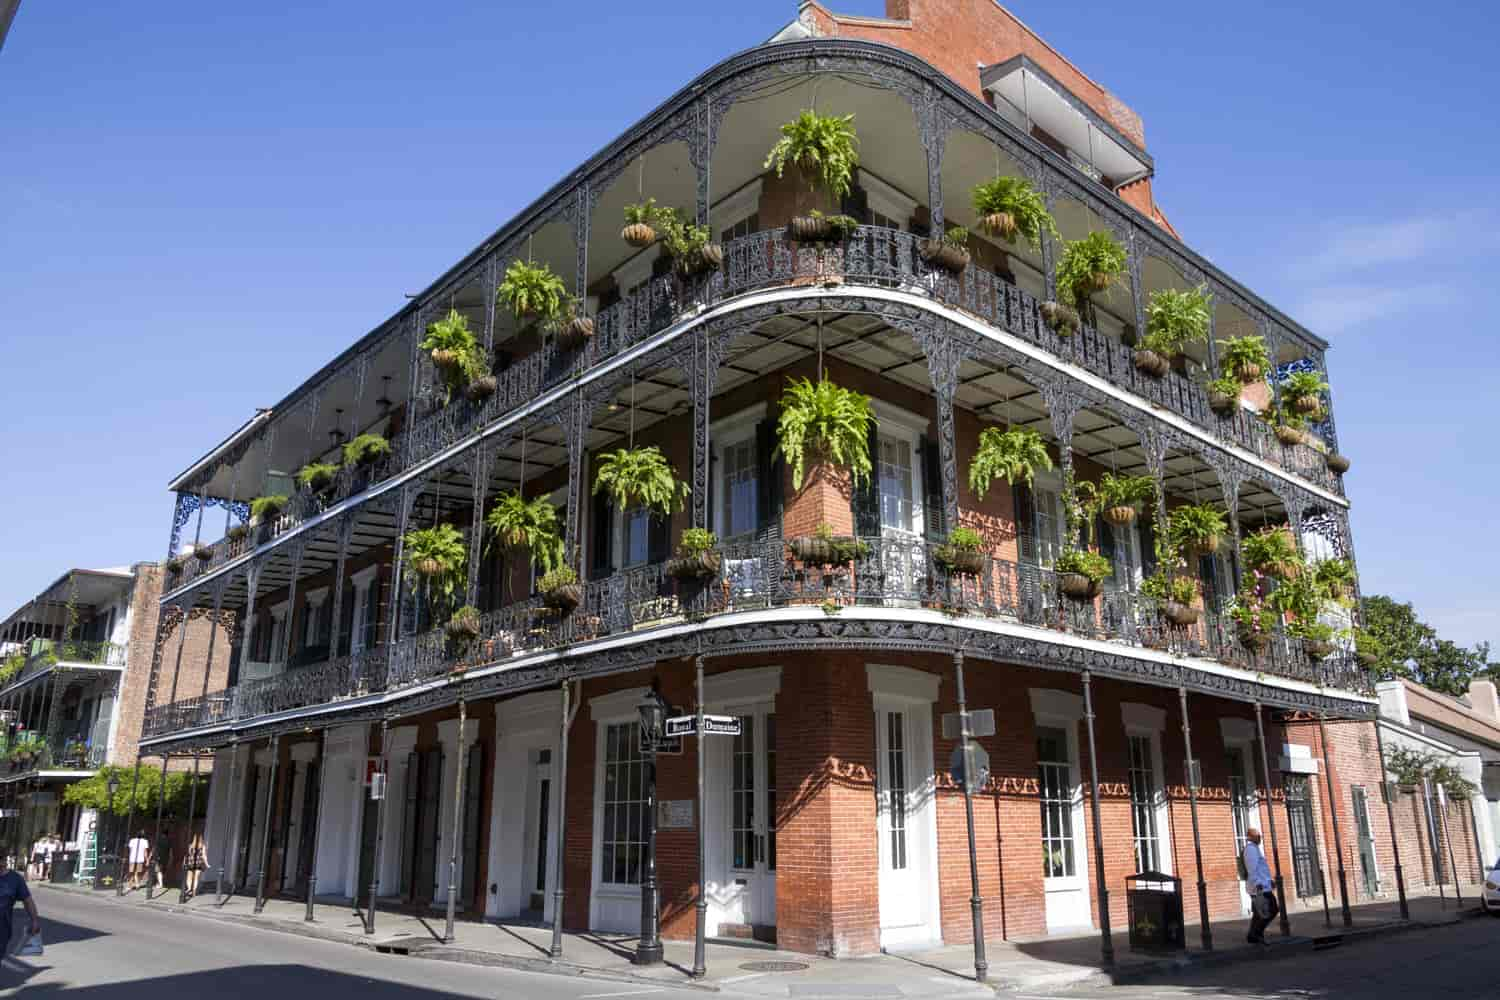 New Orleans has the biggest Voodoo practising population in the USA